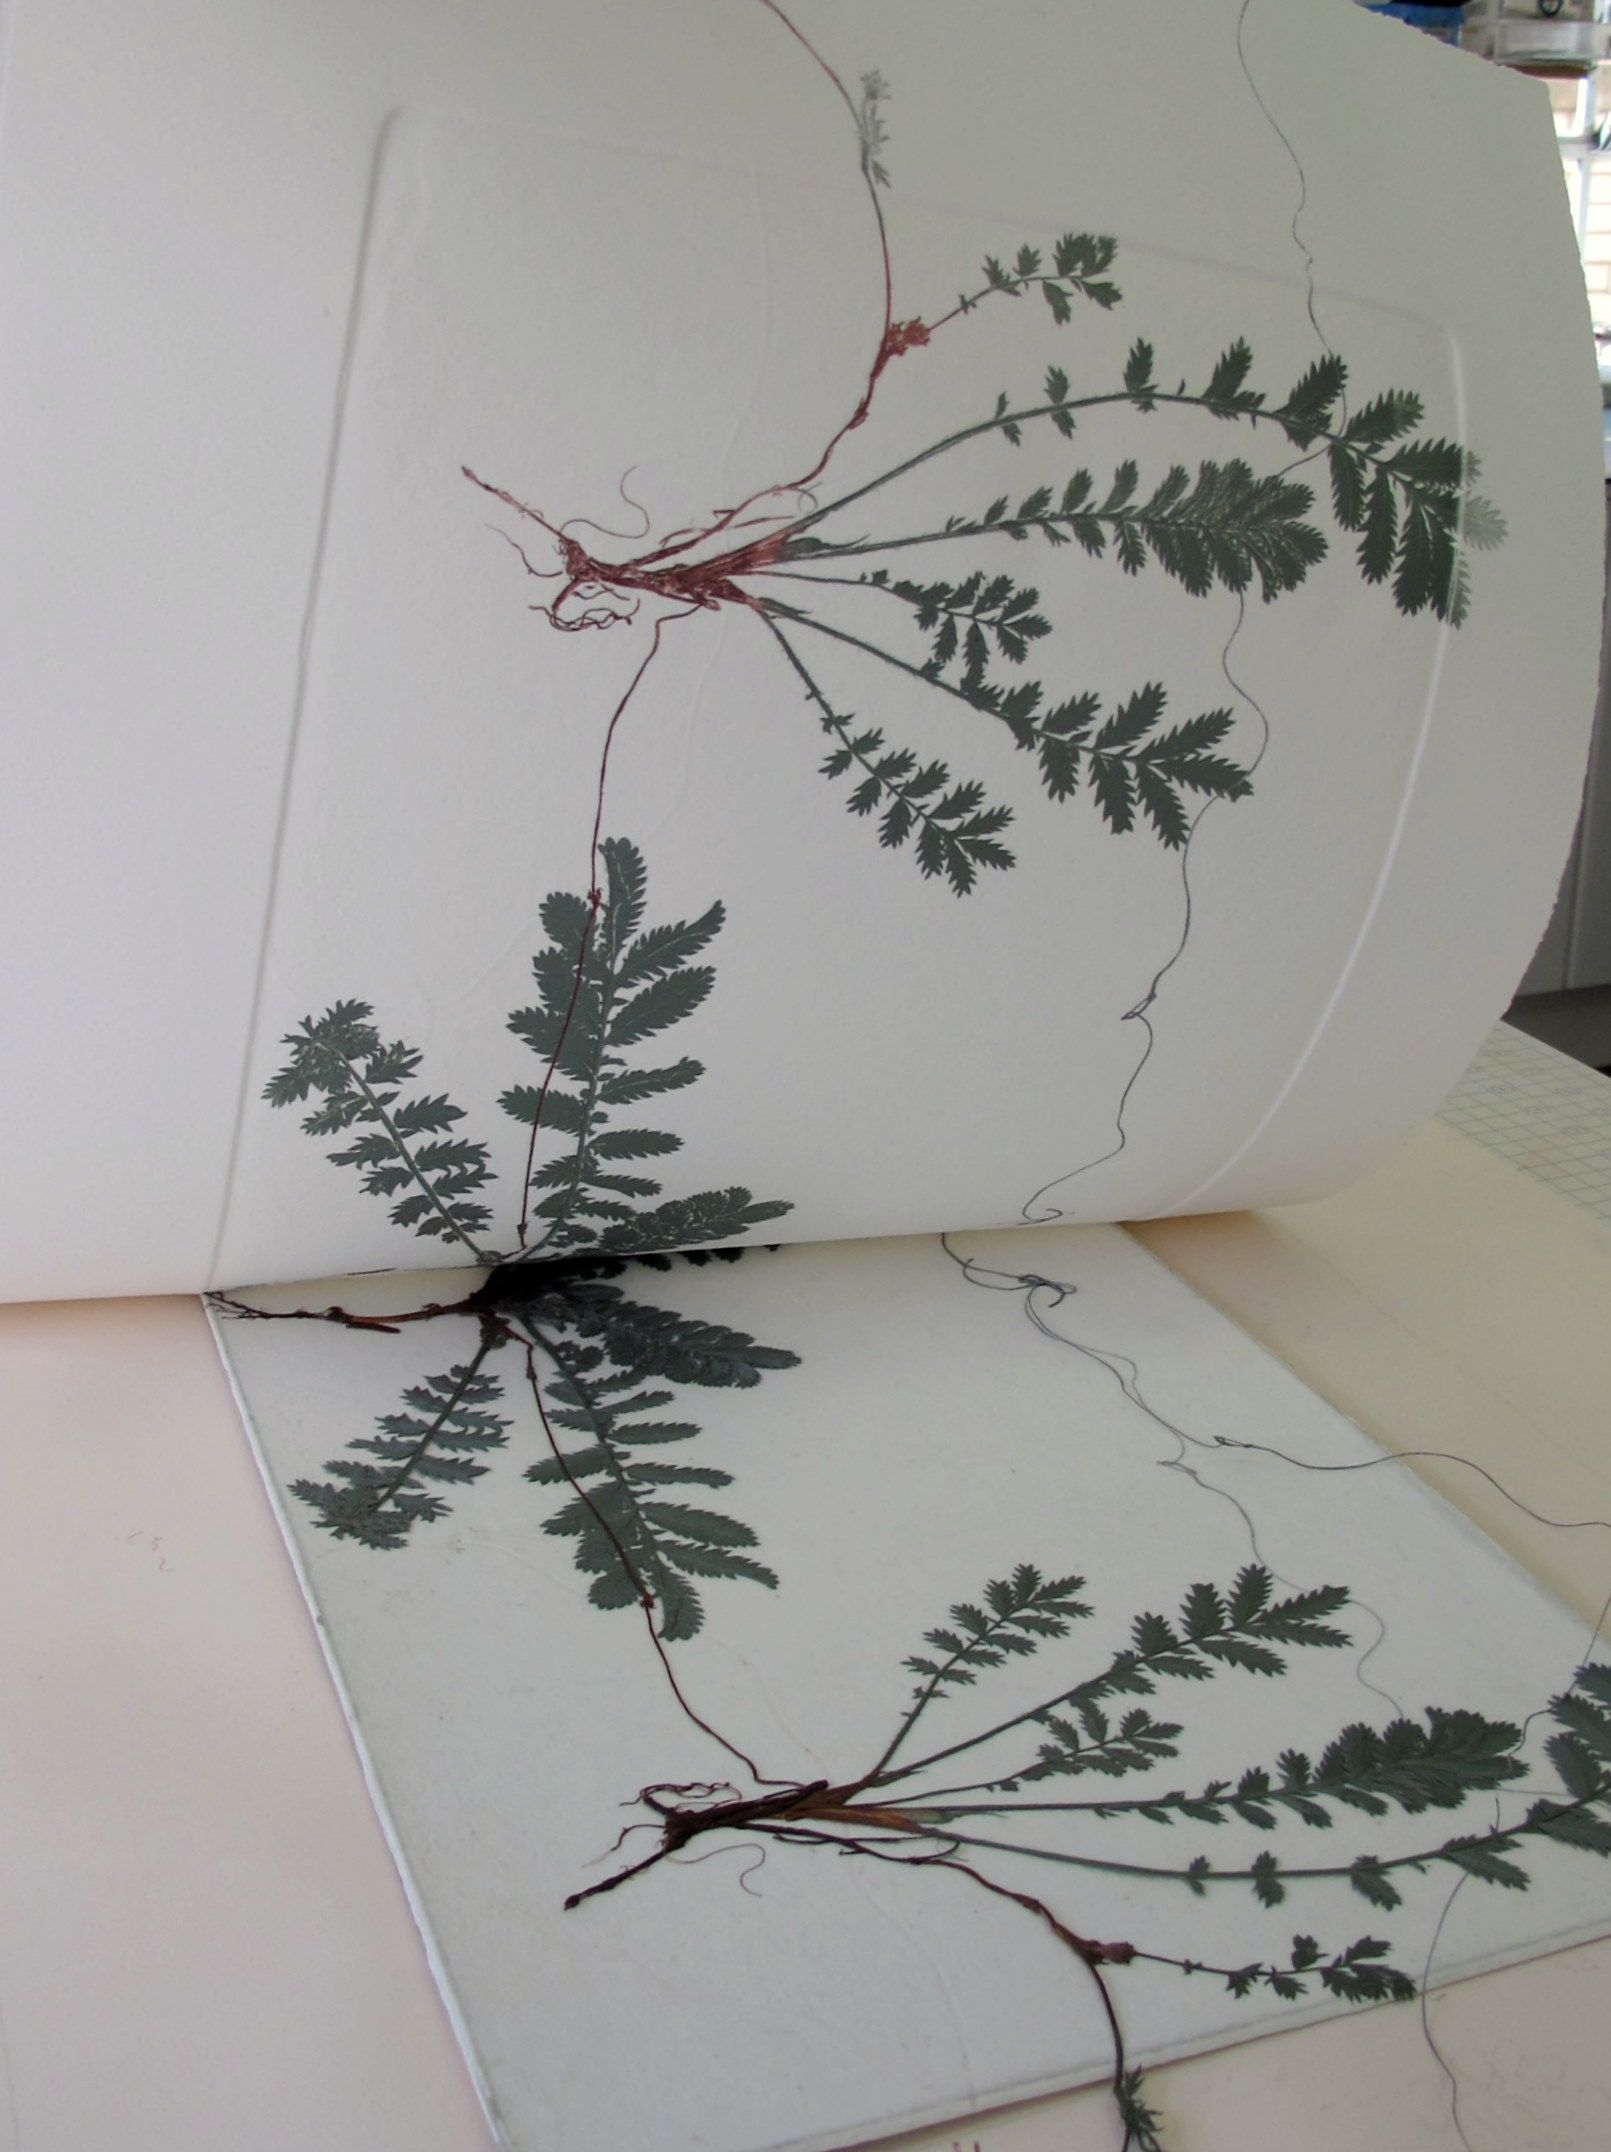 Urban Bees: Working Together, Lynn Bailey Silverweed, for [inked, nature monoprinting w/ collagraph, and chine collé...]